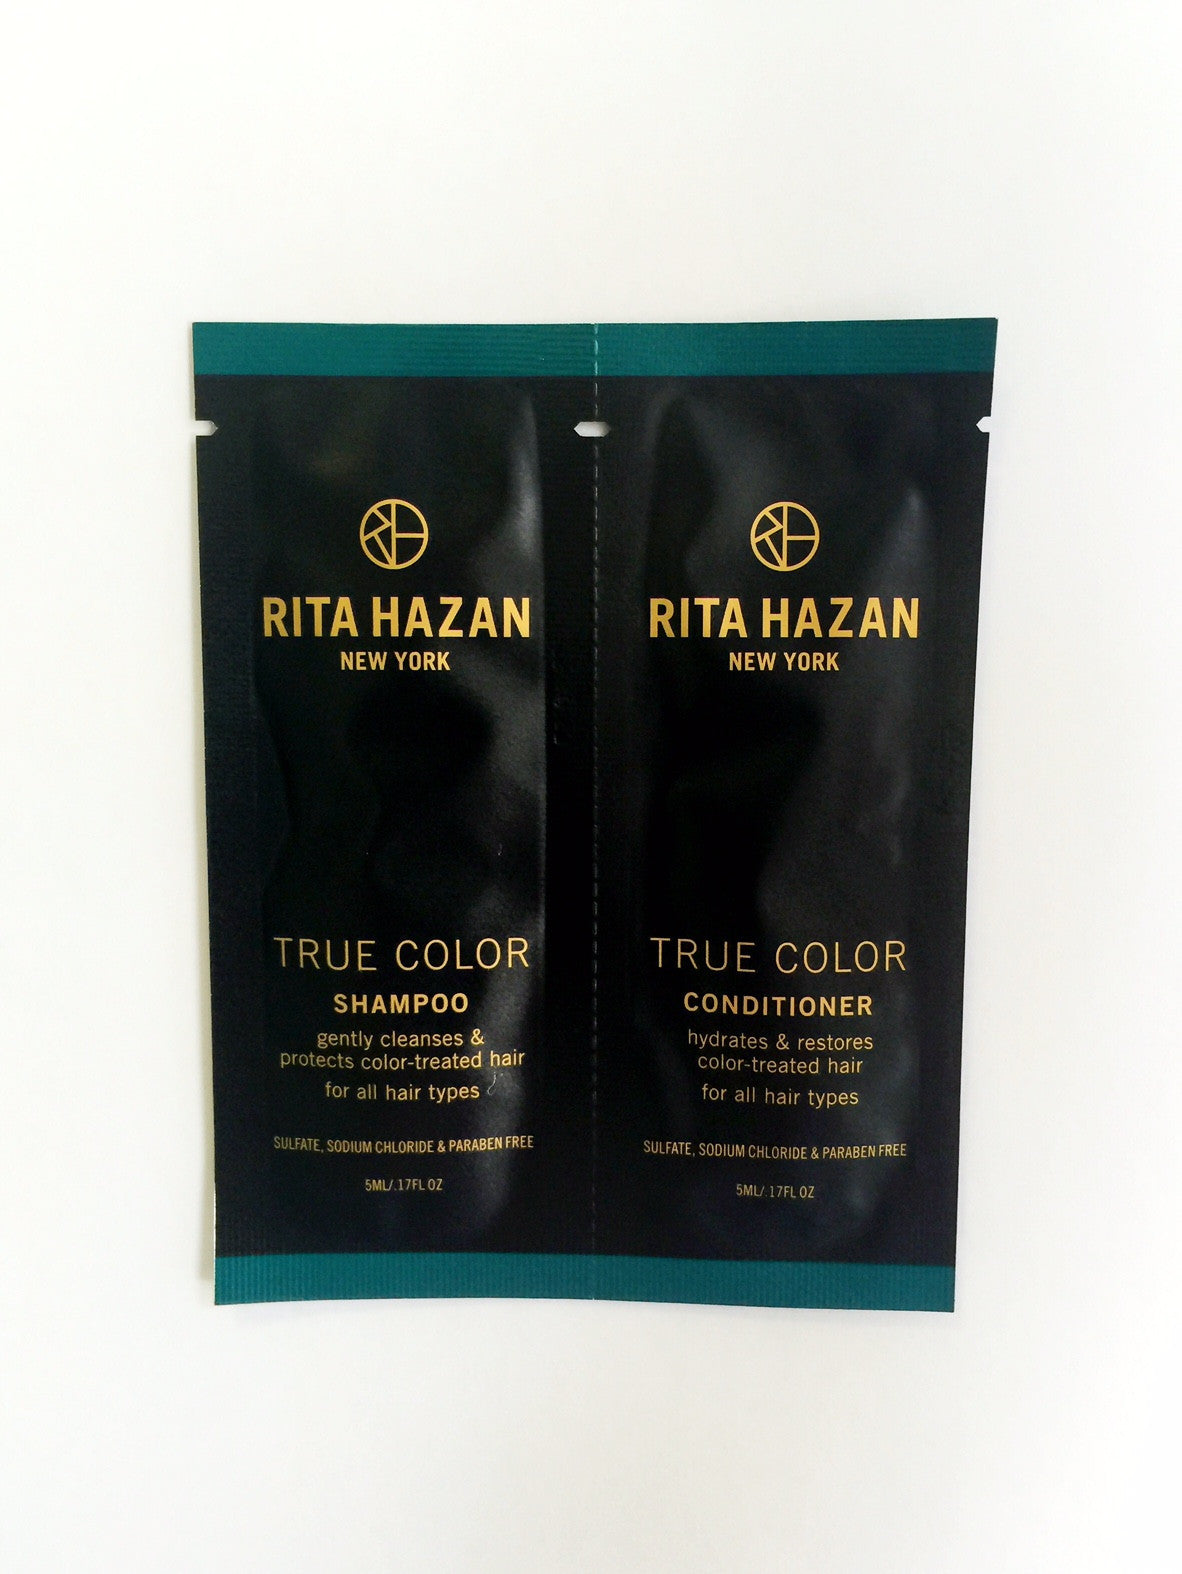 True Color Shampoo & Conditioner Packette